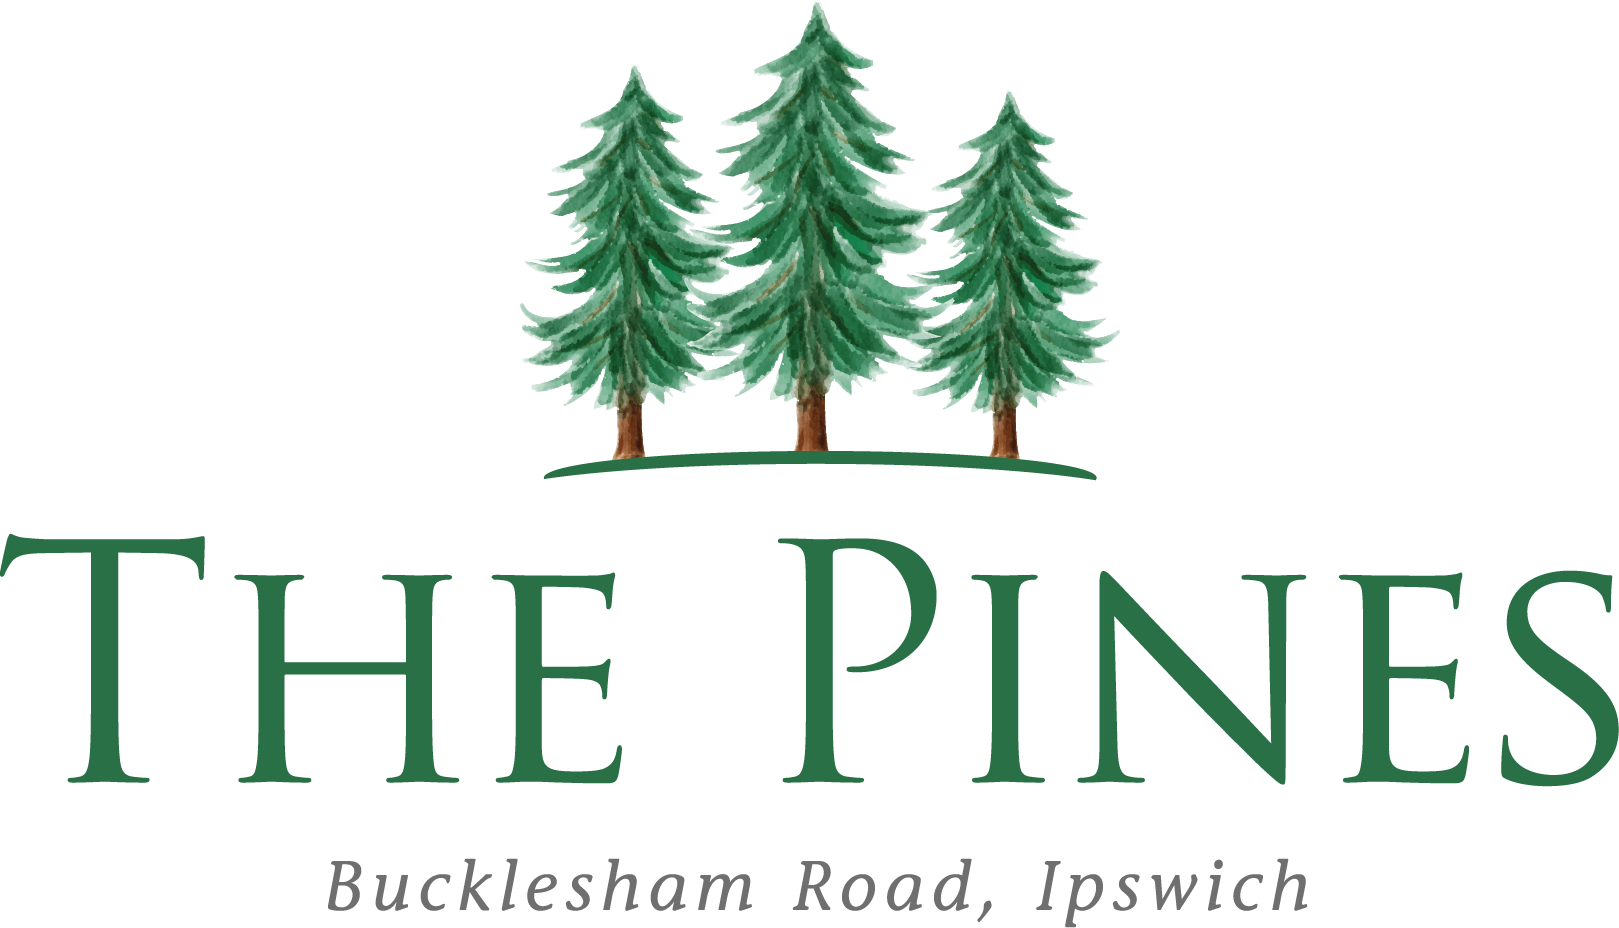 The Pines FINAL logo.png